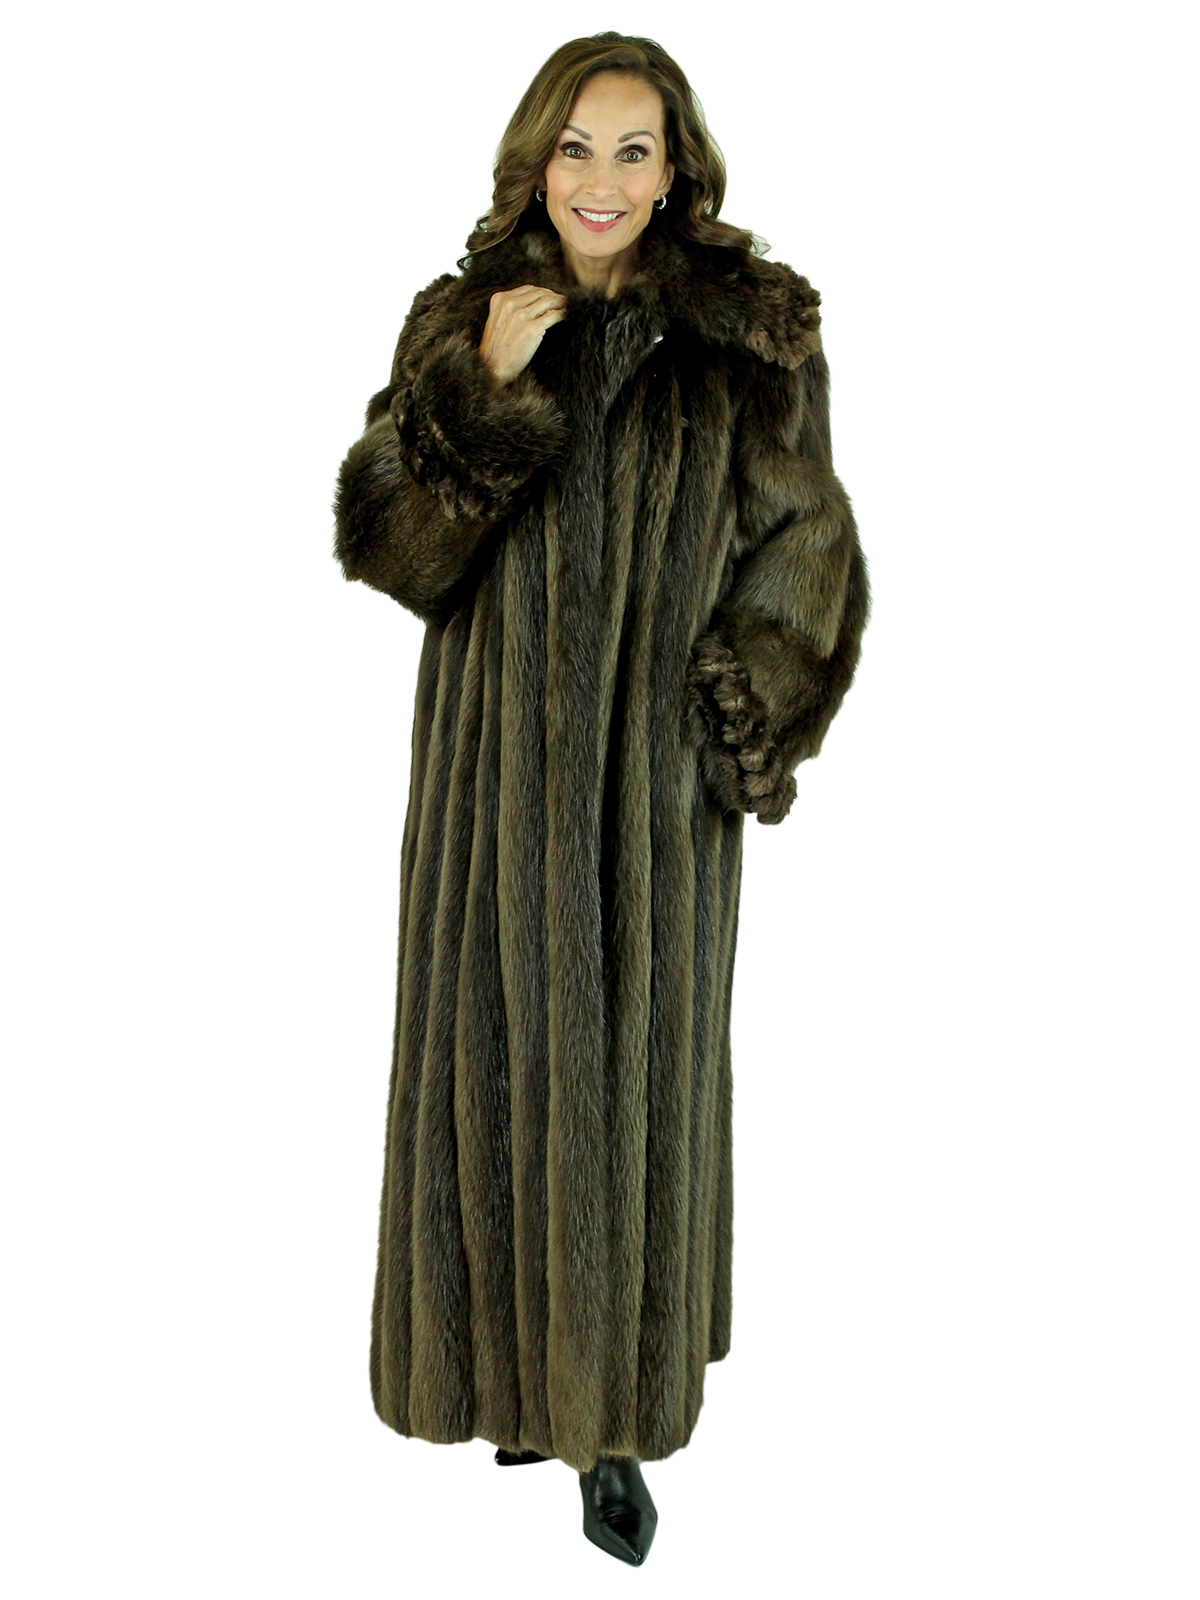 Woman's Jean Crisan Beaver Fur Coat with Sheared and Knit Beaver Trim